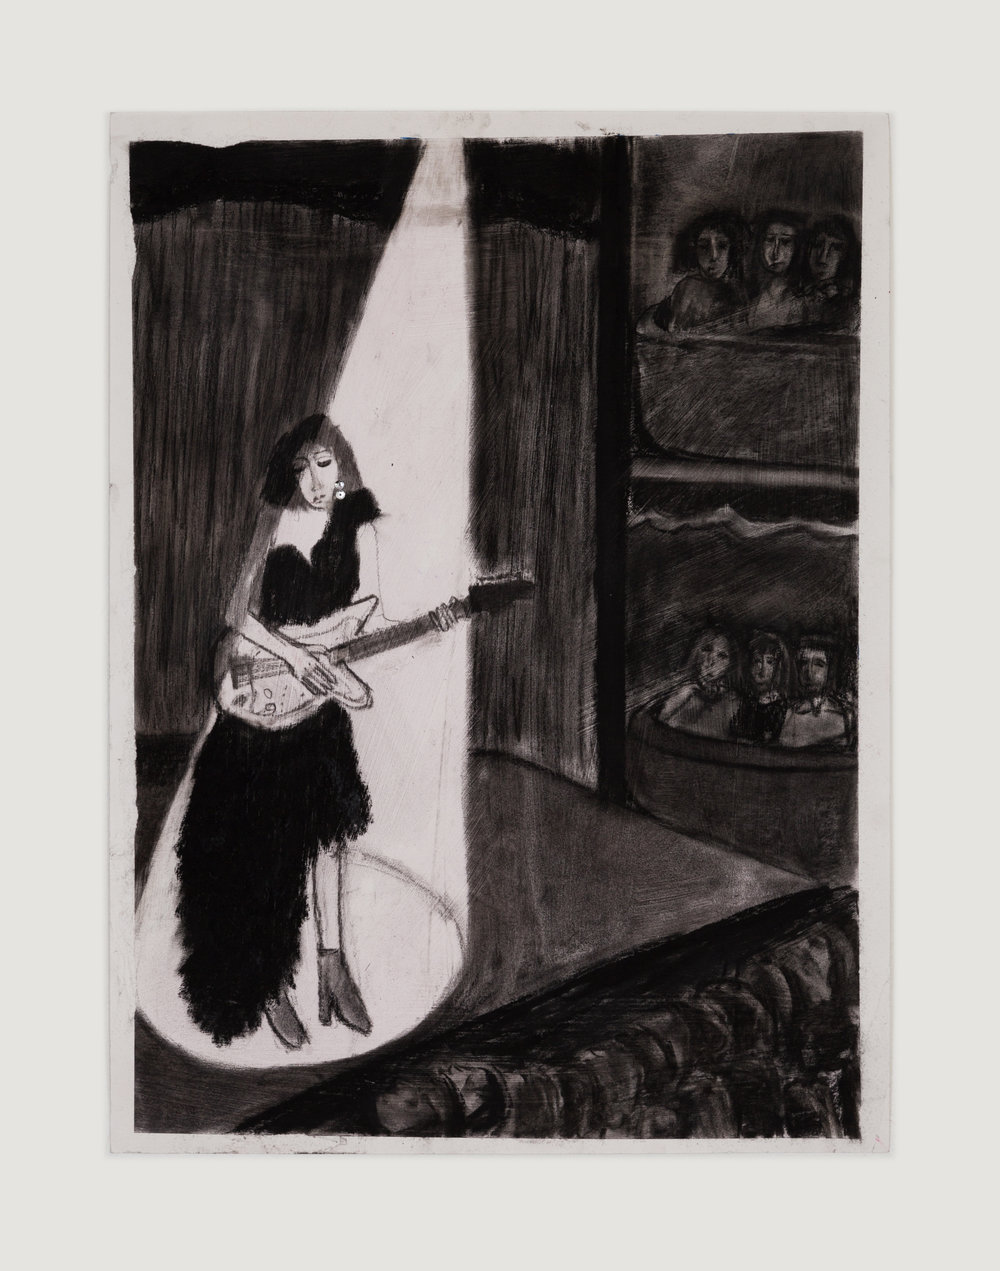 Girl with Guitar,  charcoal and sequins on paper, 24 in. x 18 in., 2018